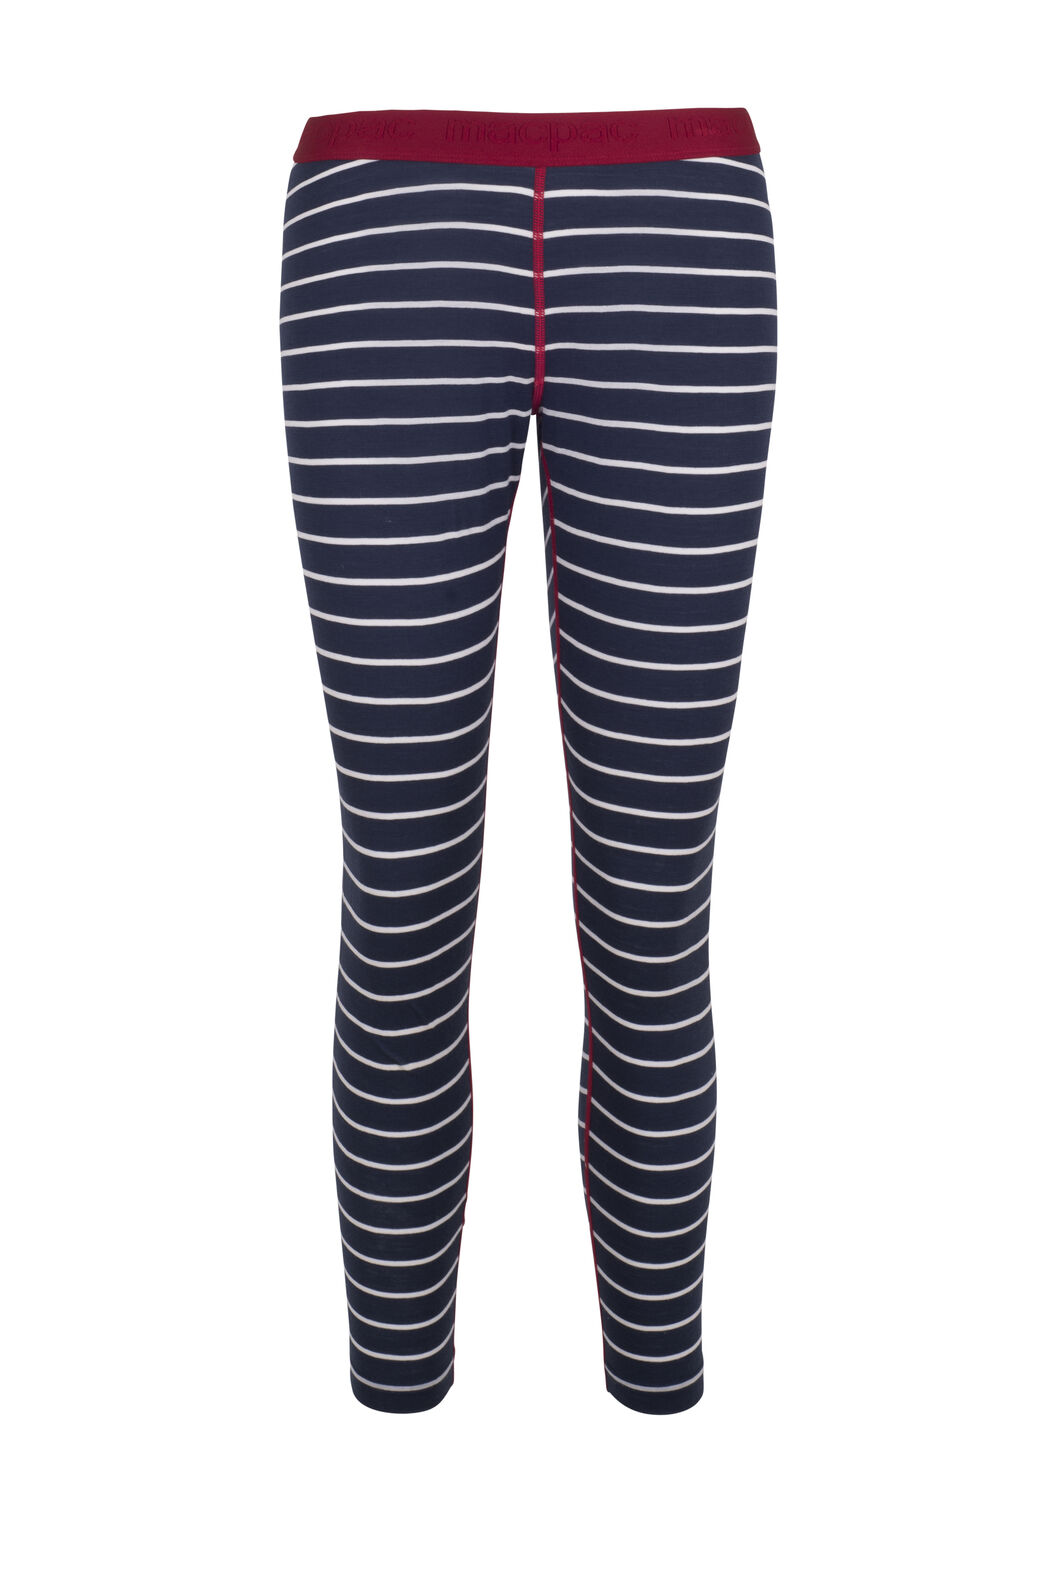 Macpac 180 Merino Long Johns - Women's, Black Iris Stripe/Jester, hi-res